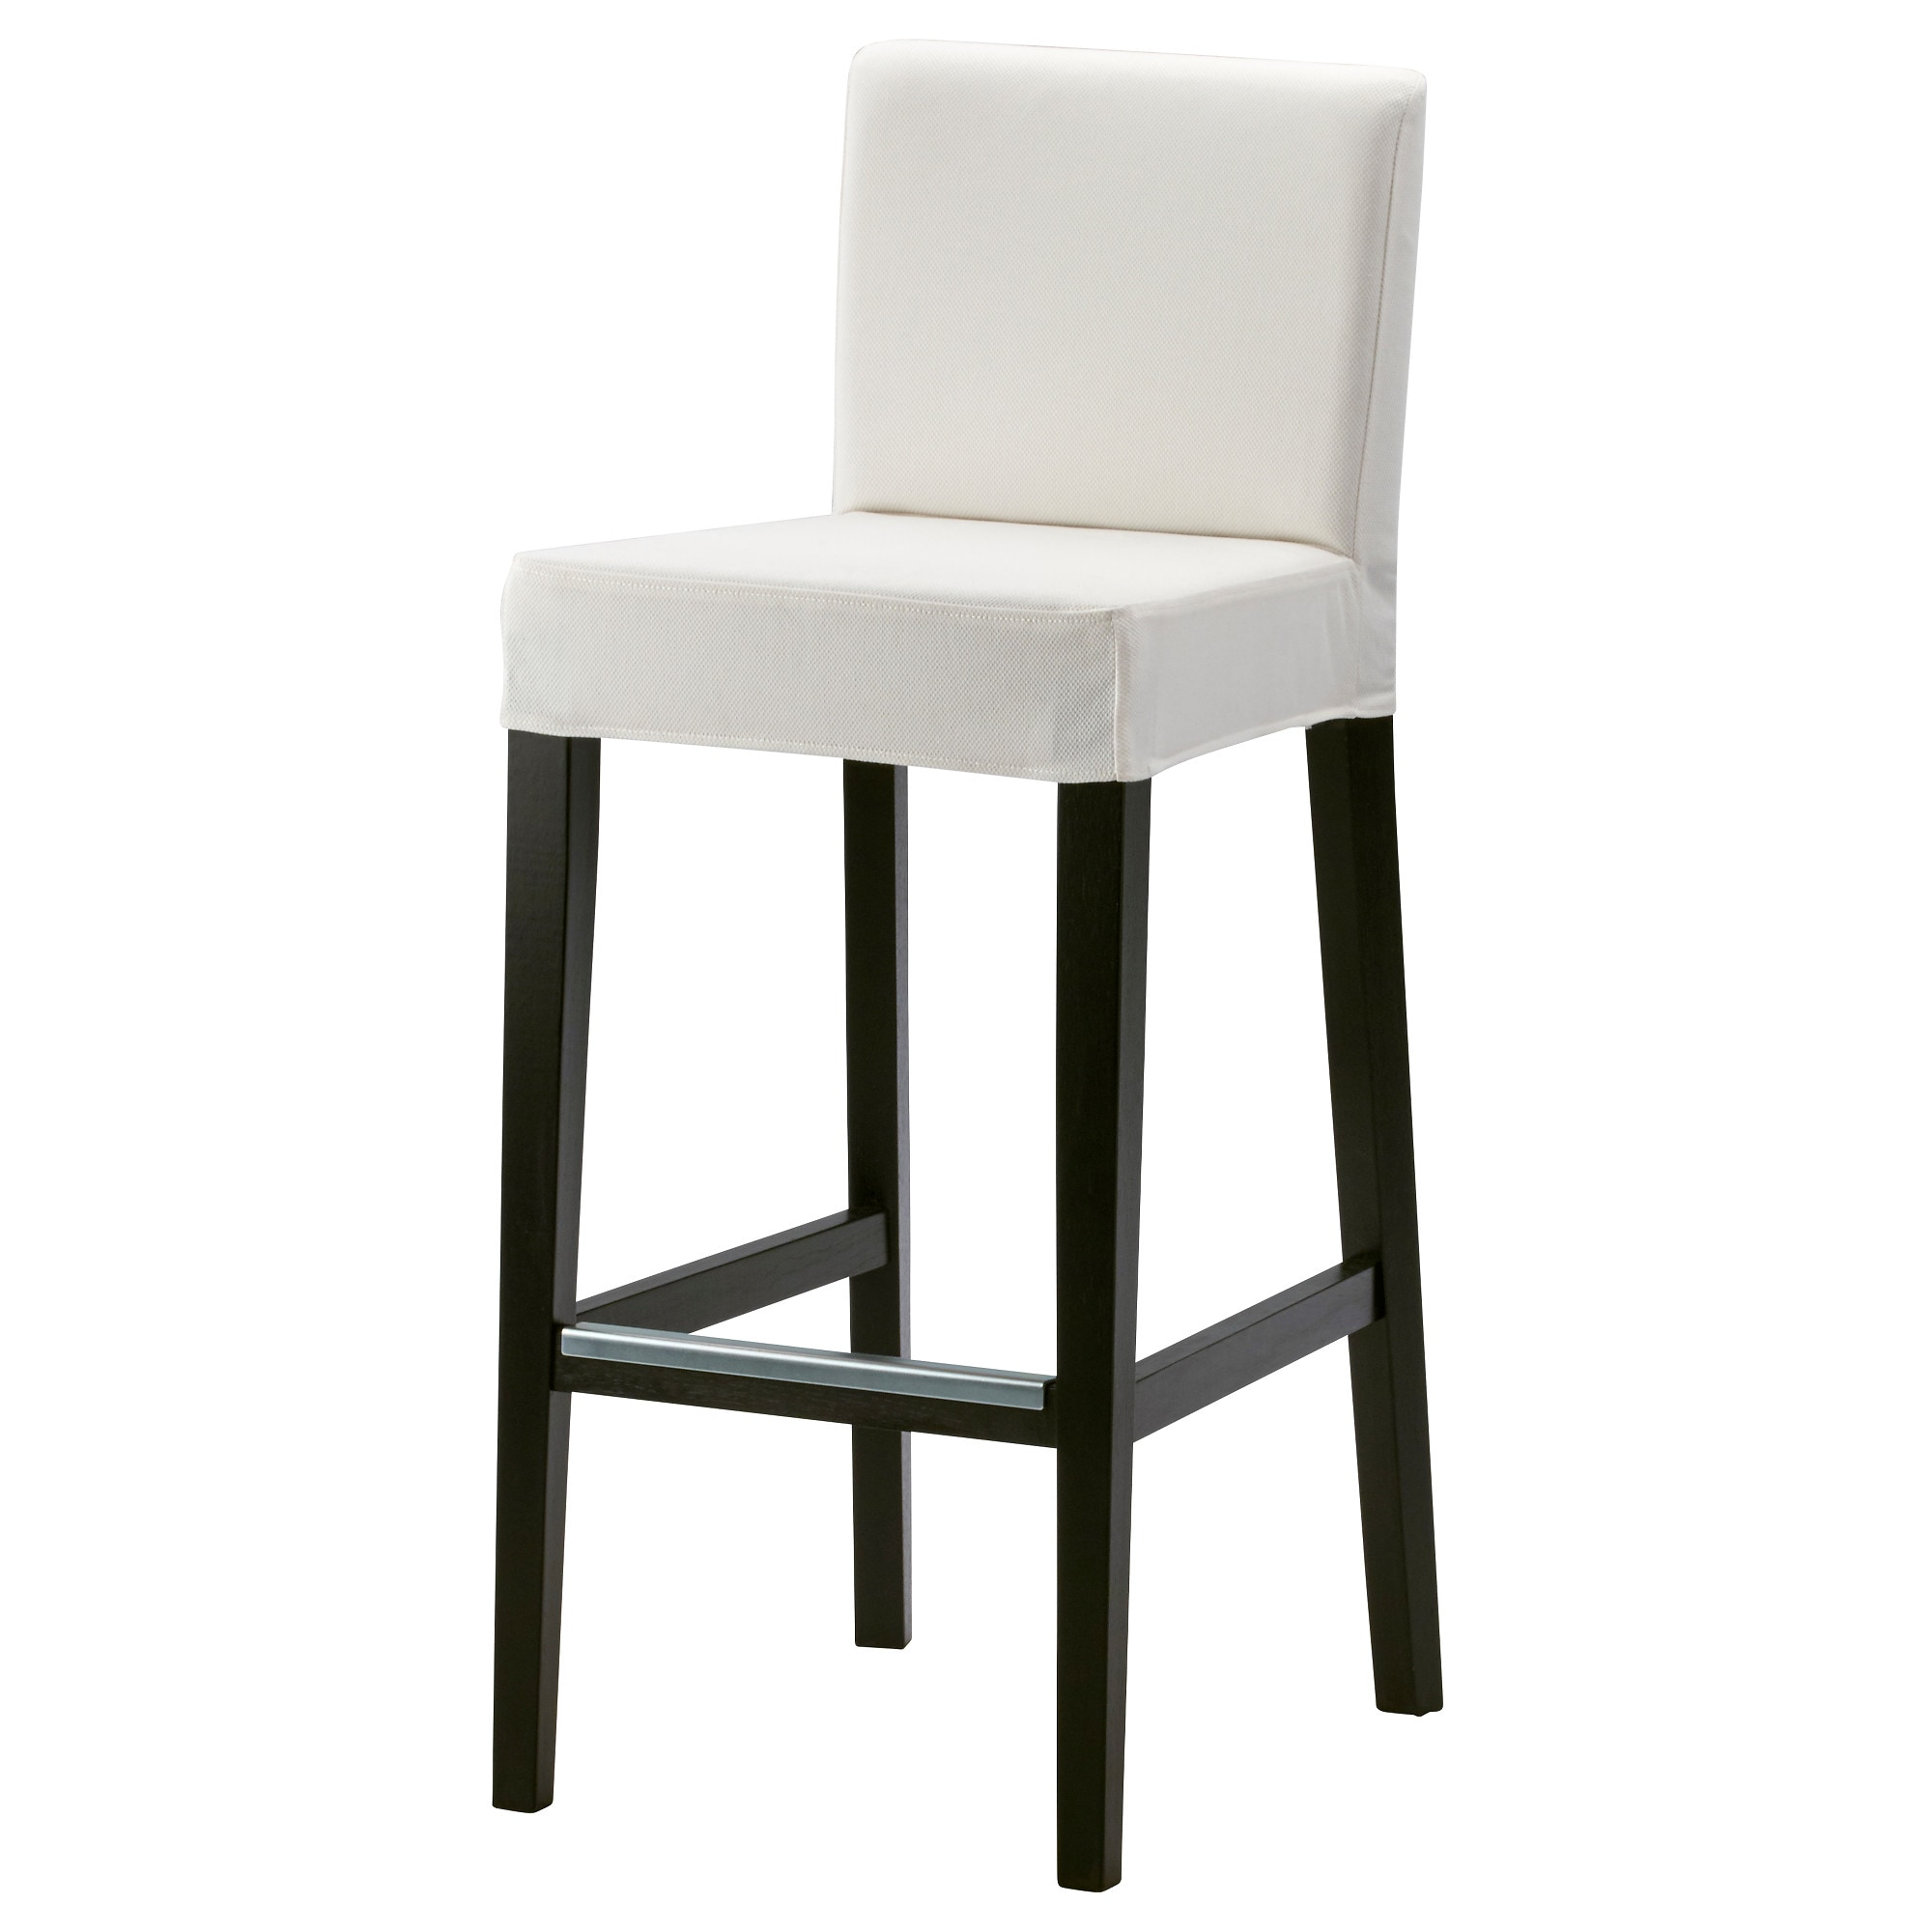 HENRIKSDAL bar stool with backrest, brown-black, Grsbo white Tested for:  220